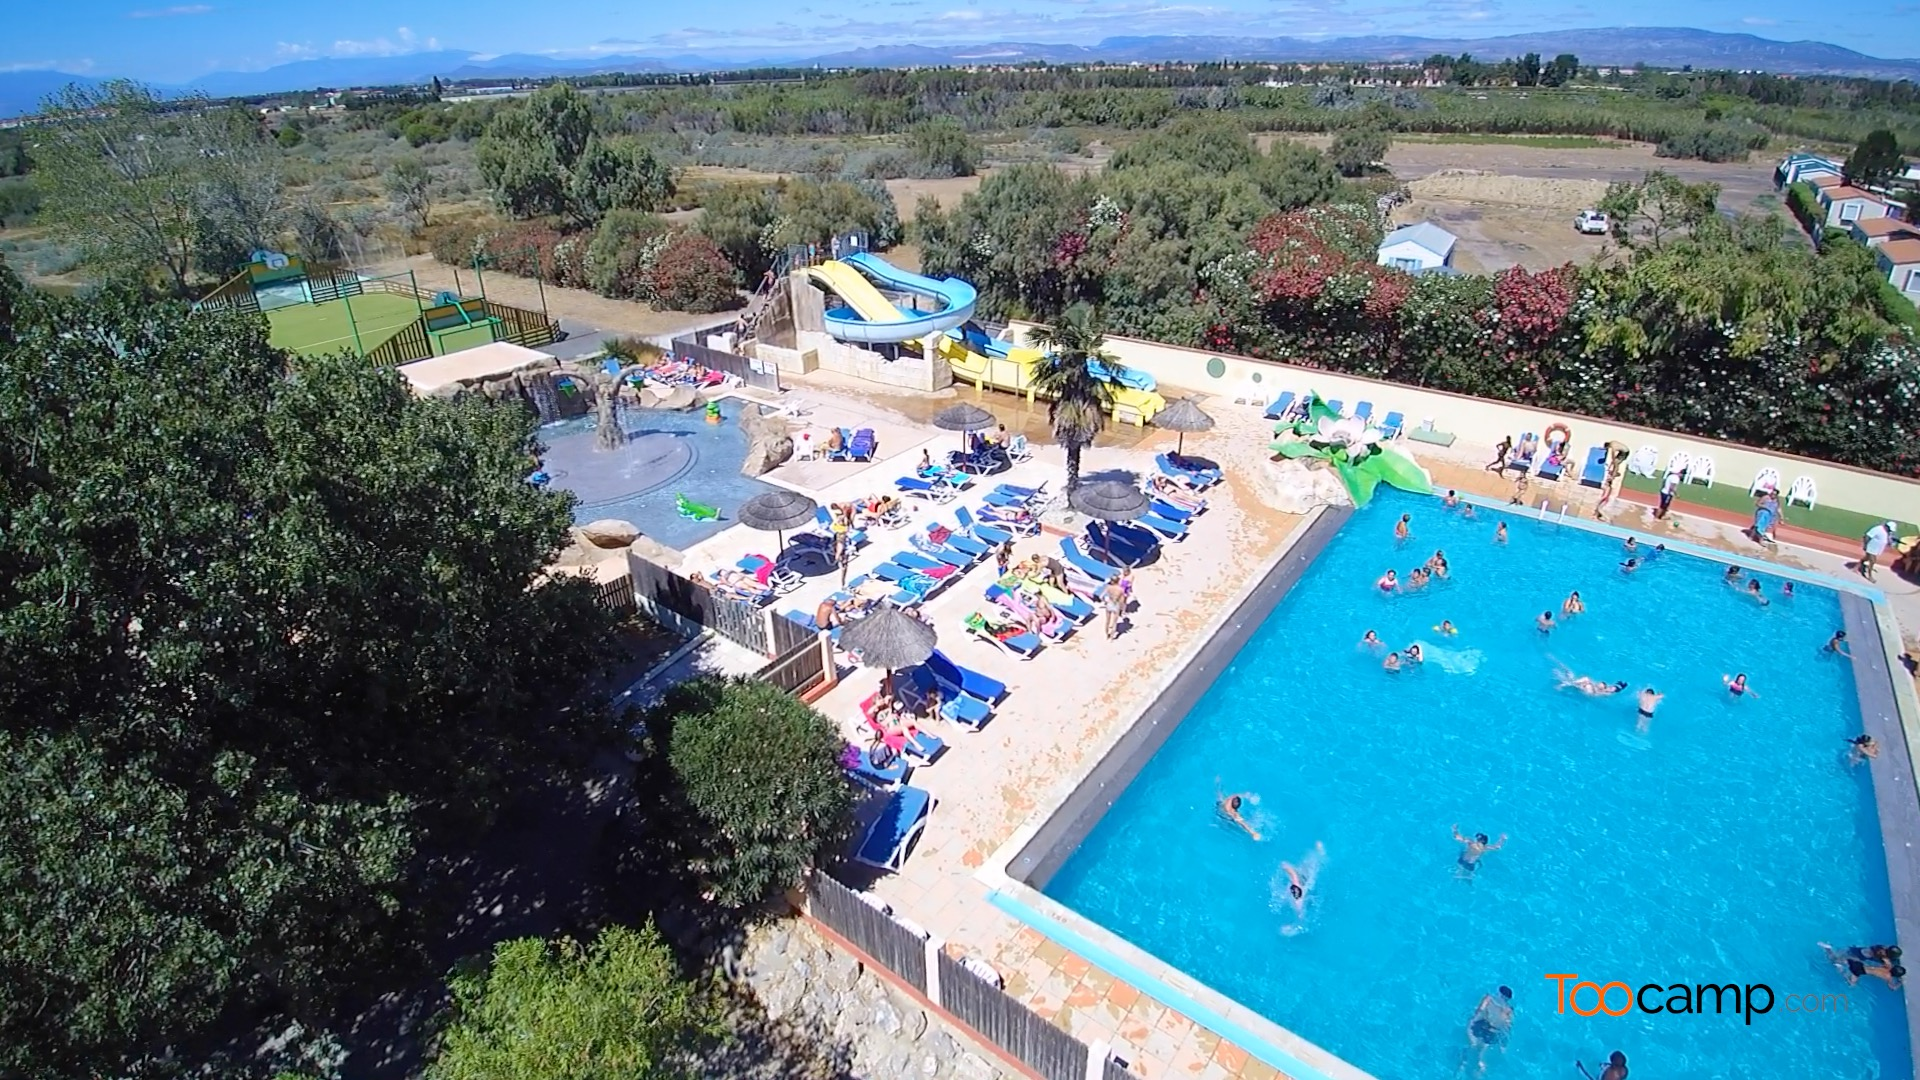 Camping - Le Trivoly - Torreilles - Languedoc-Roussillon - France